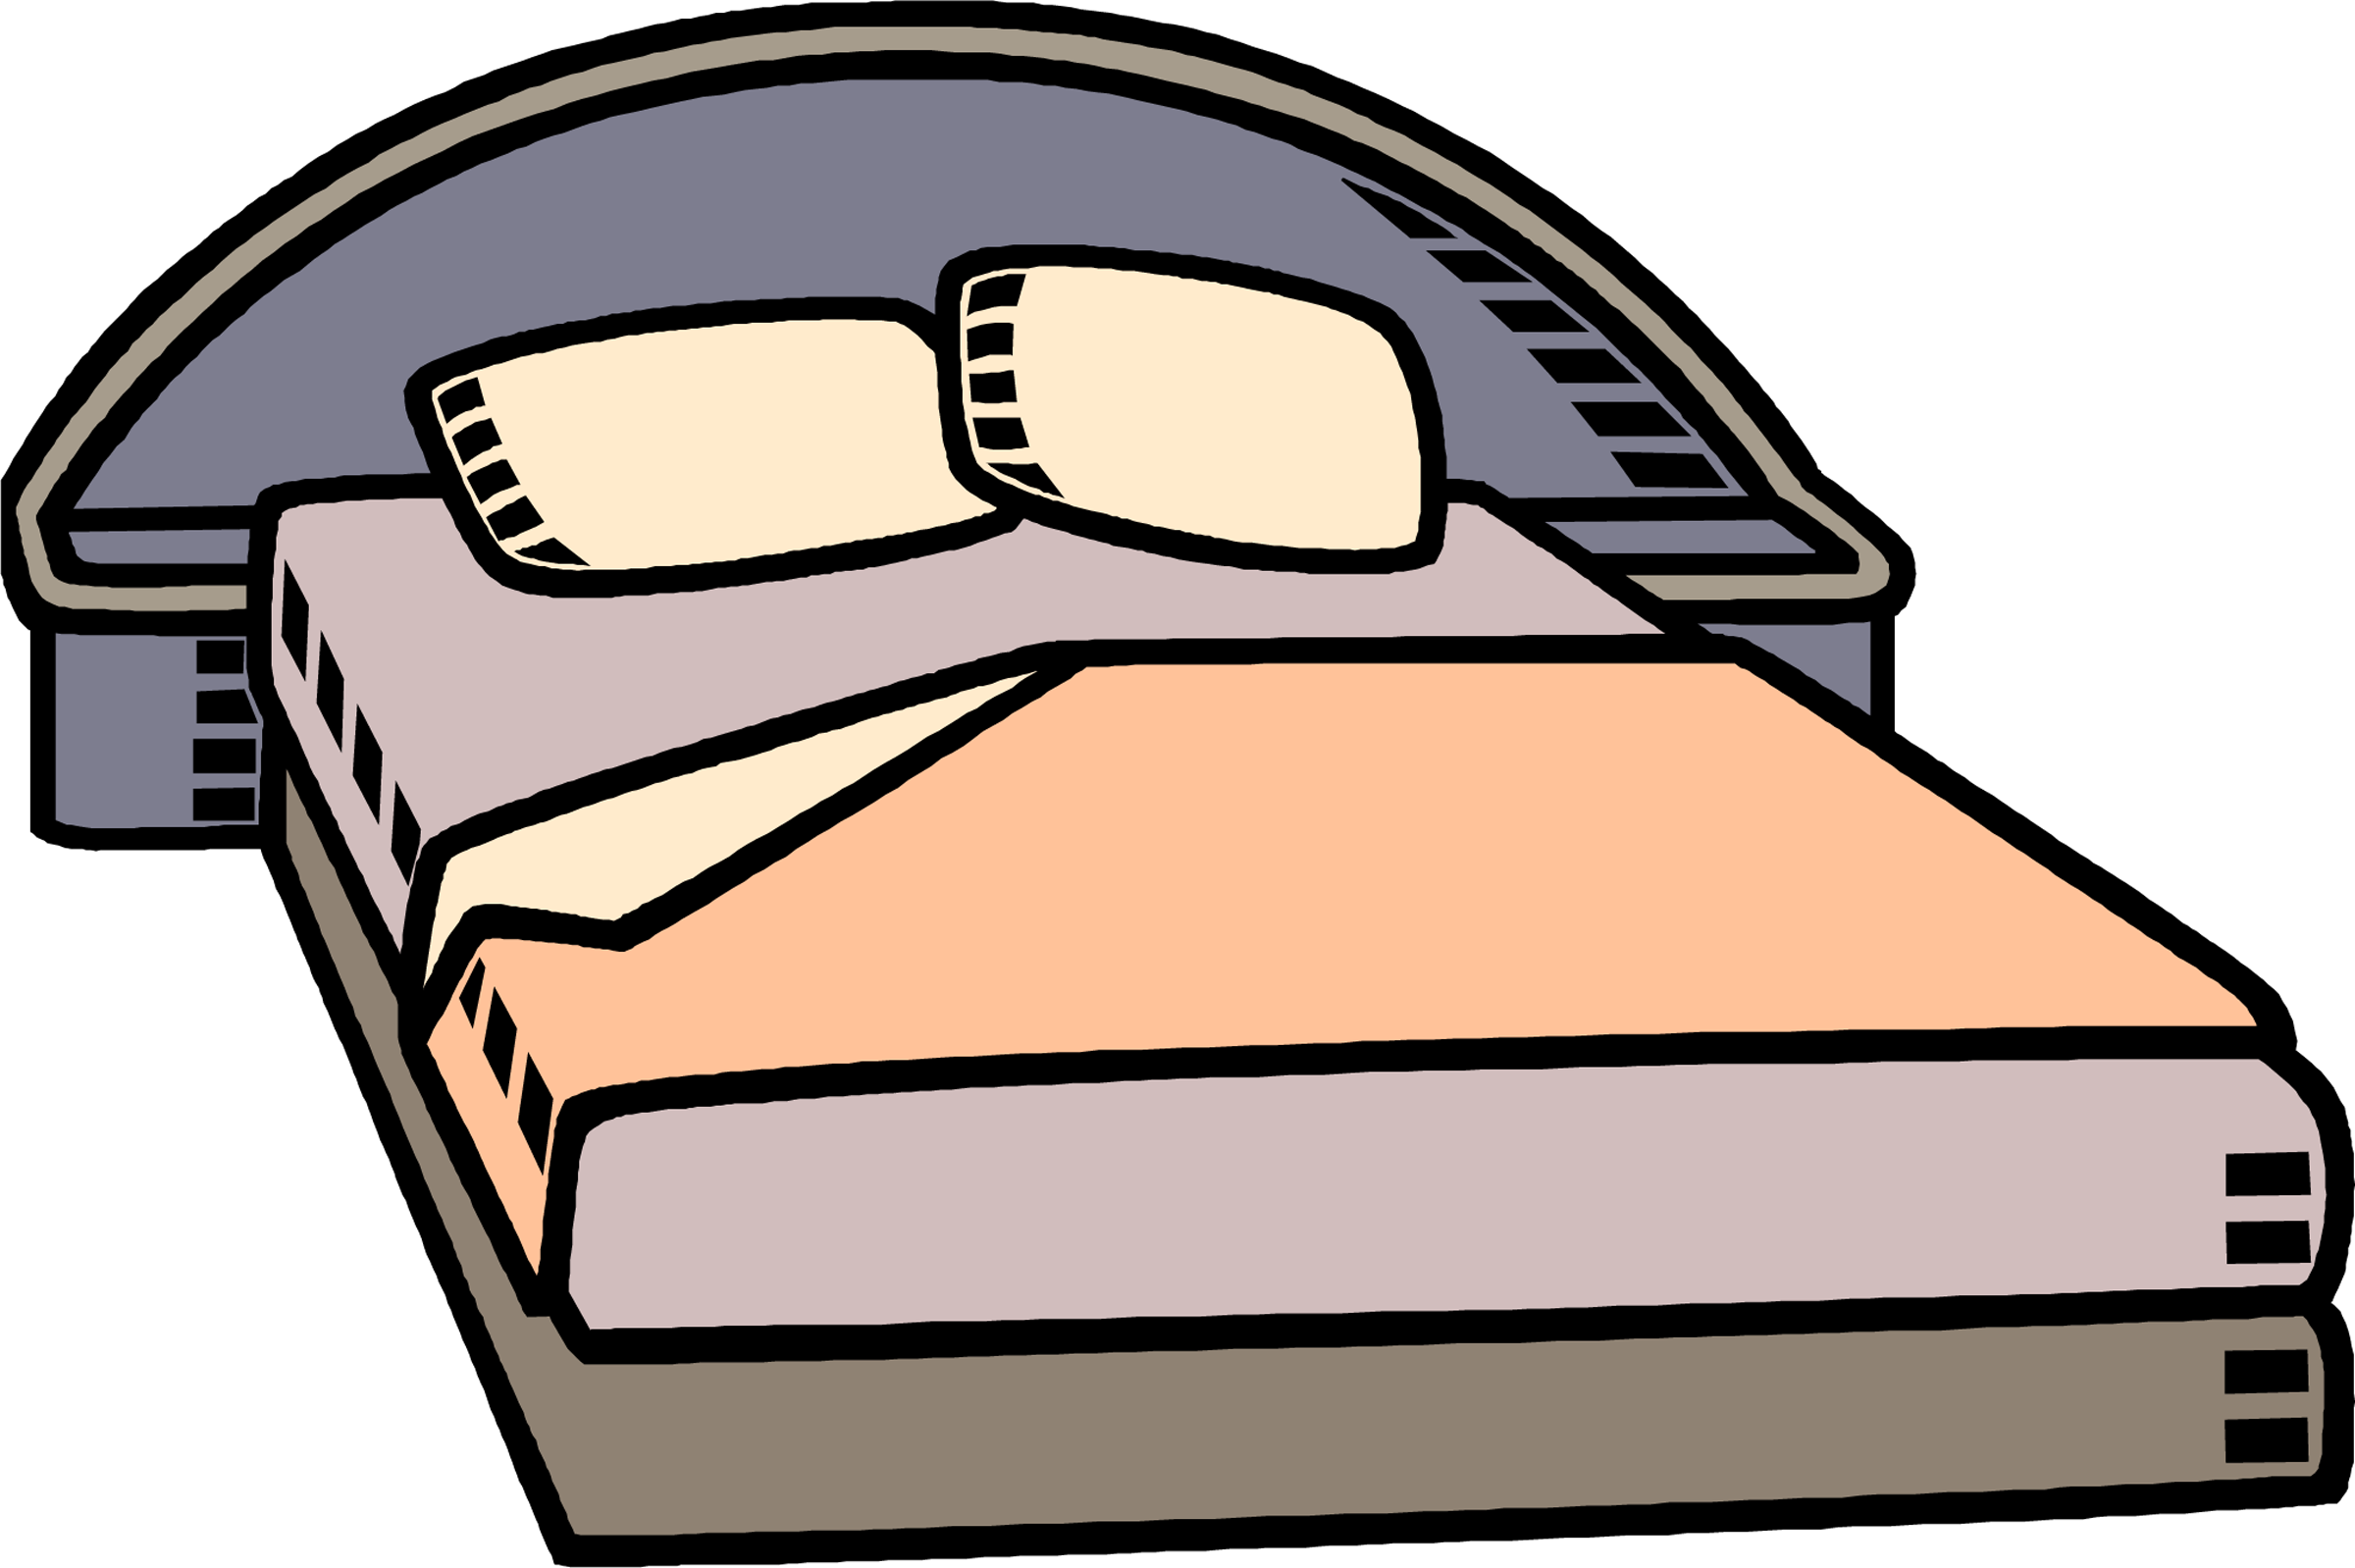 2400x1598 Make Bed Clipart Free Images 3 3